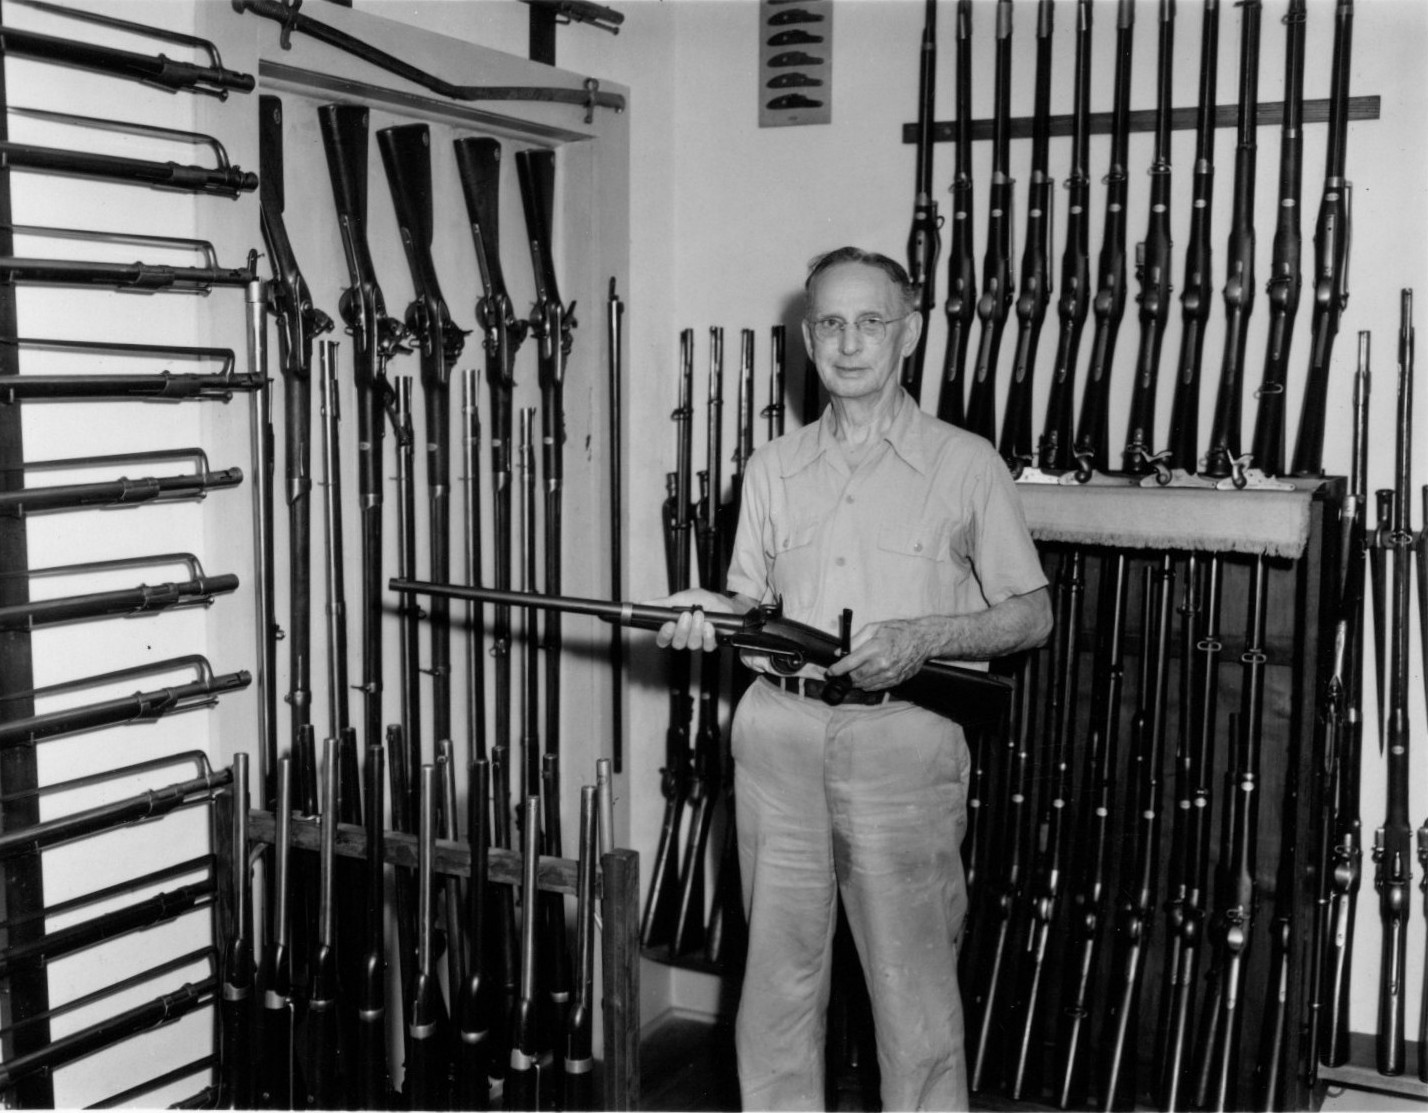 Claude Fuller with a few of his weapons